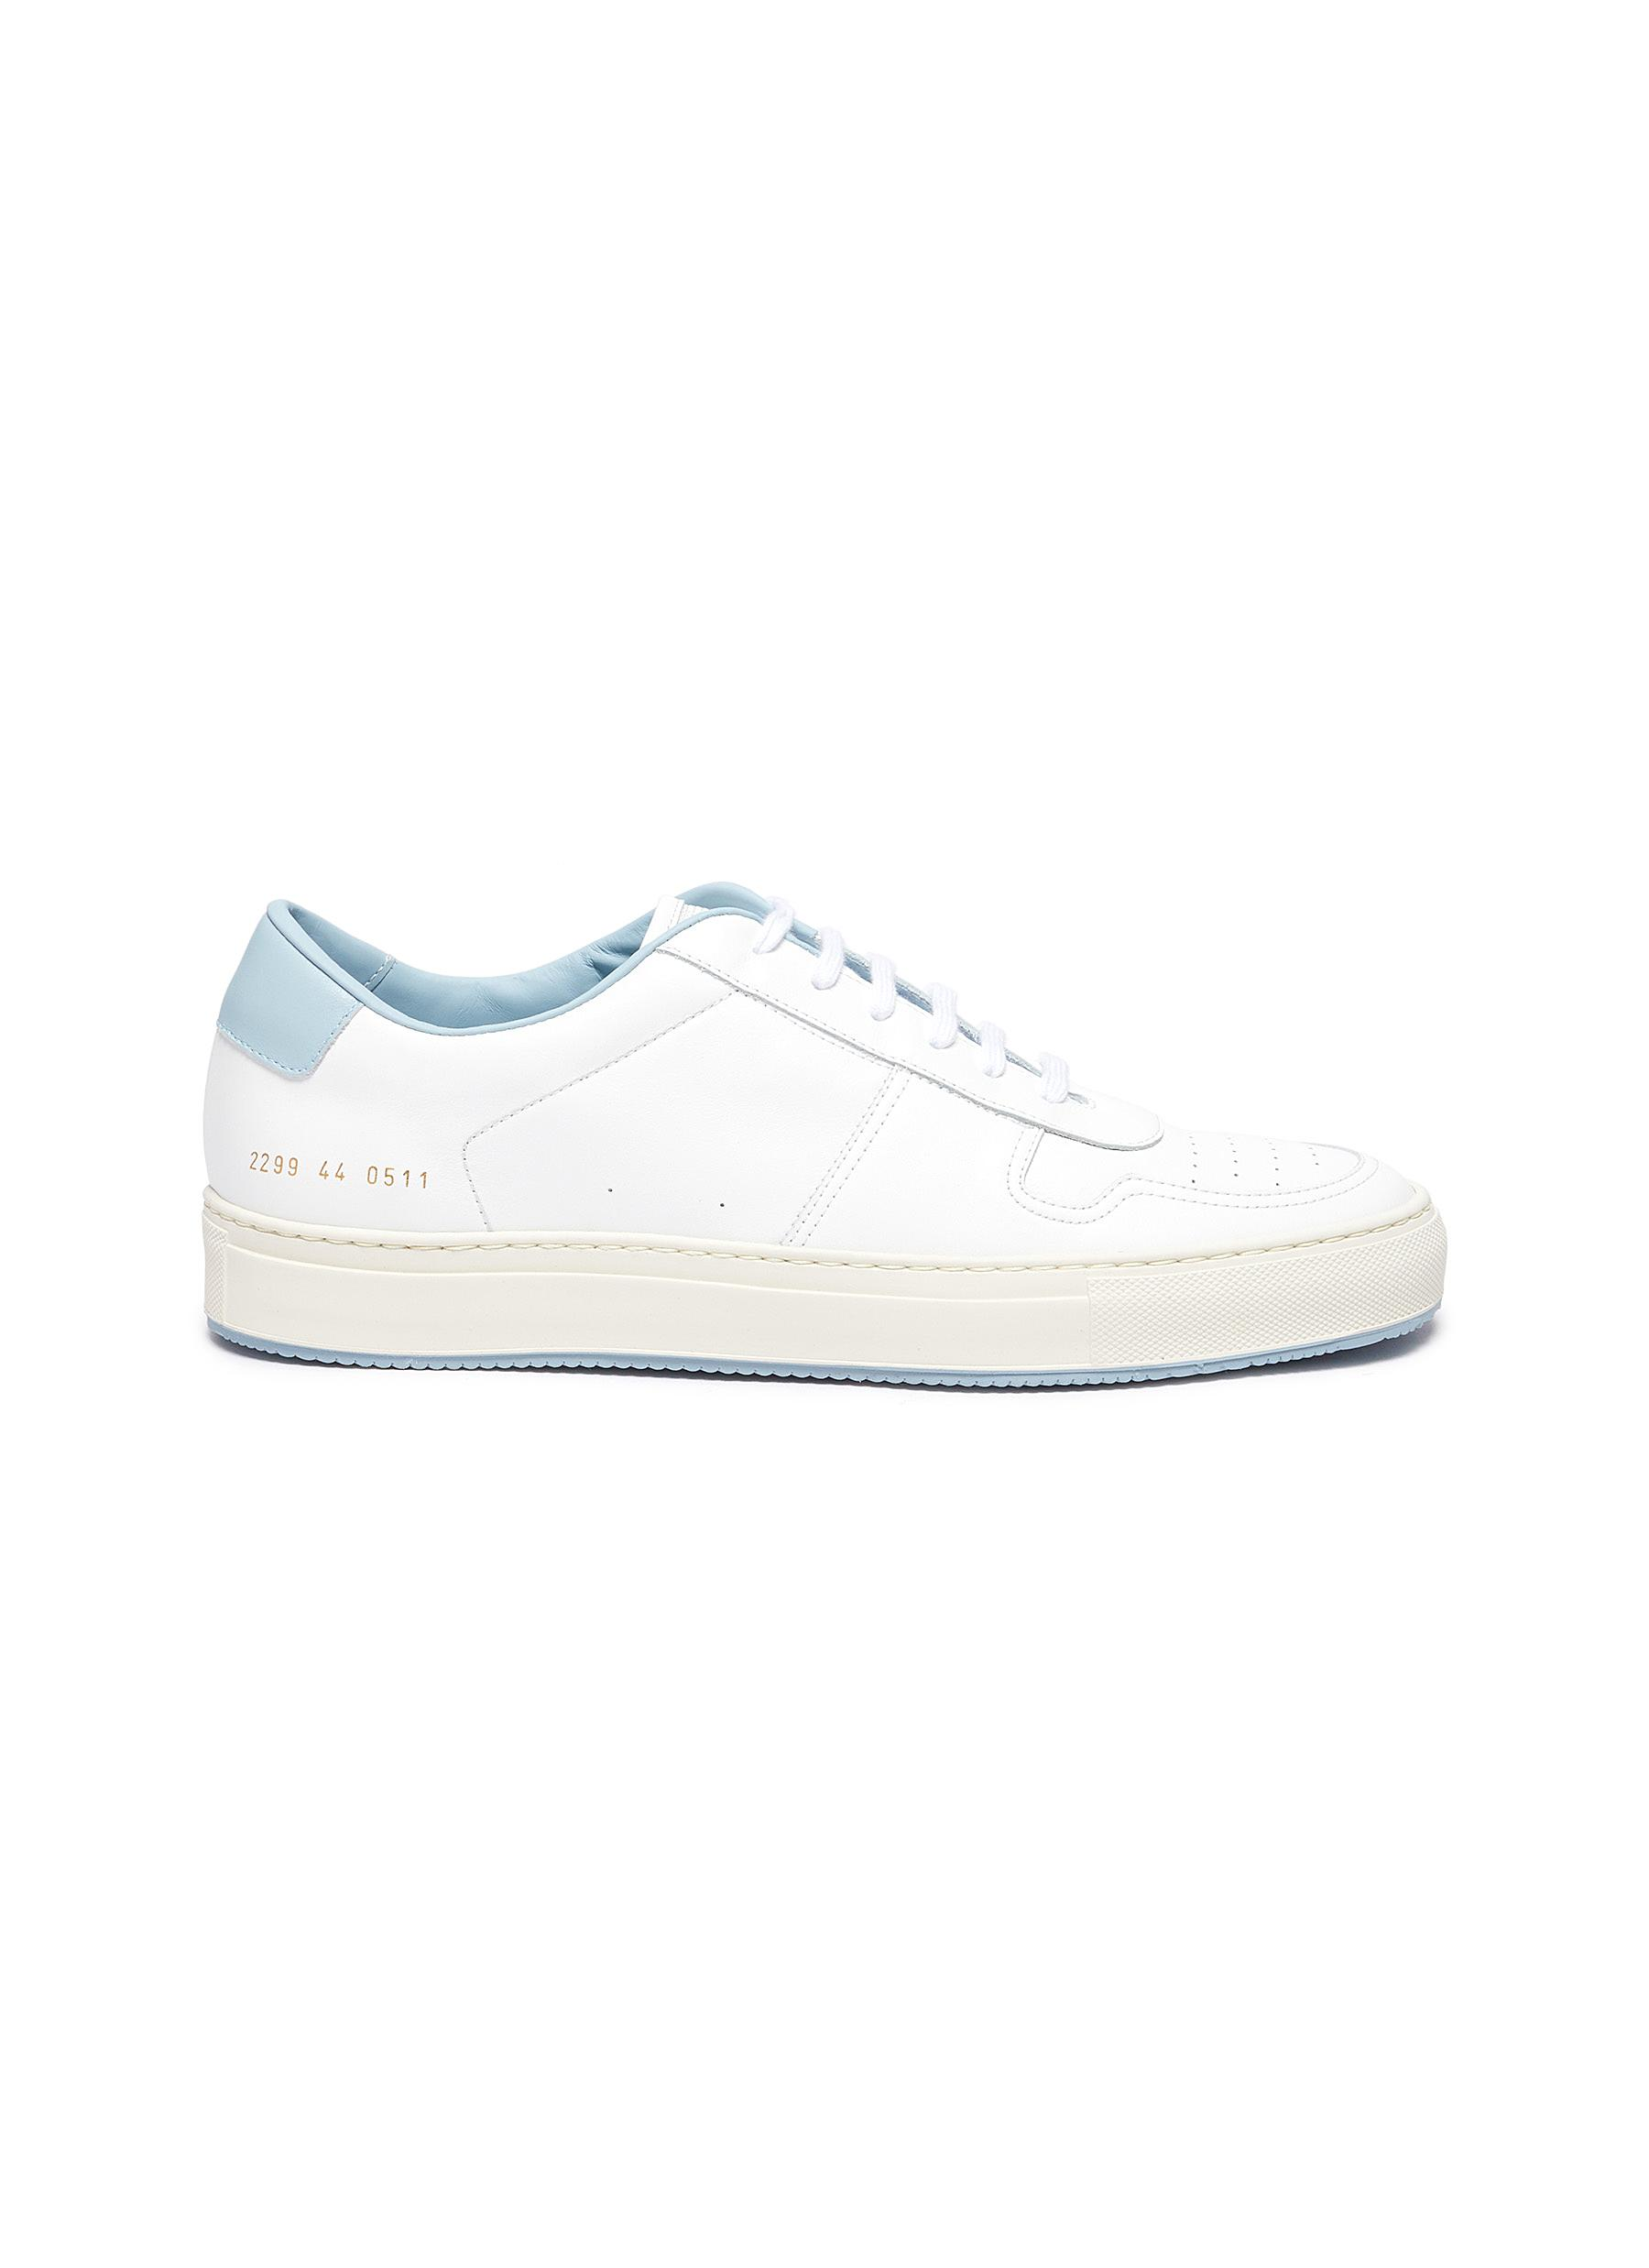 Common Projects 'BBALL '90' LEATHER SNEAKERS